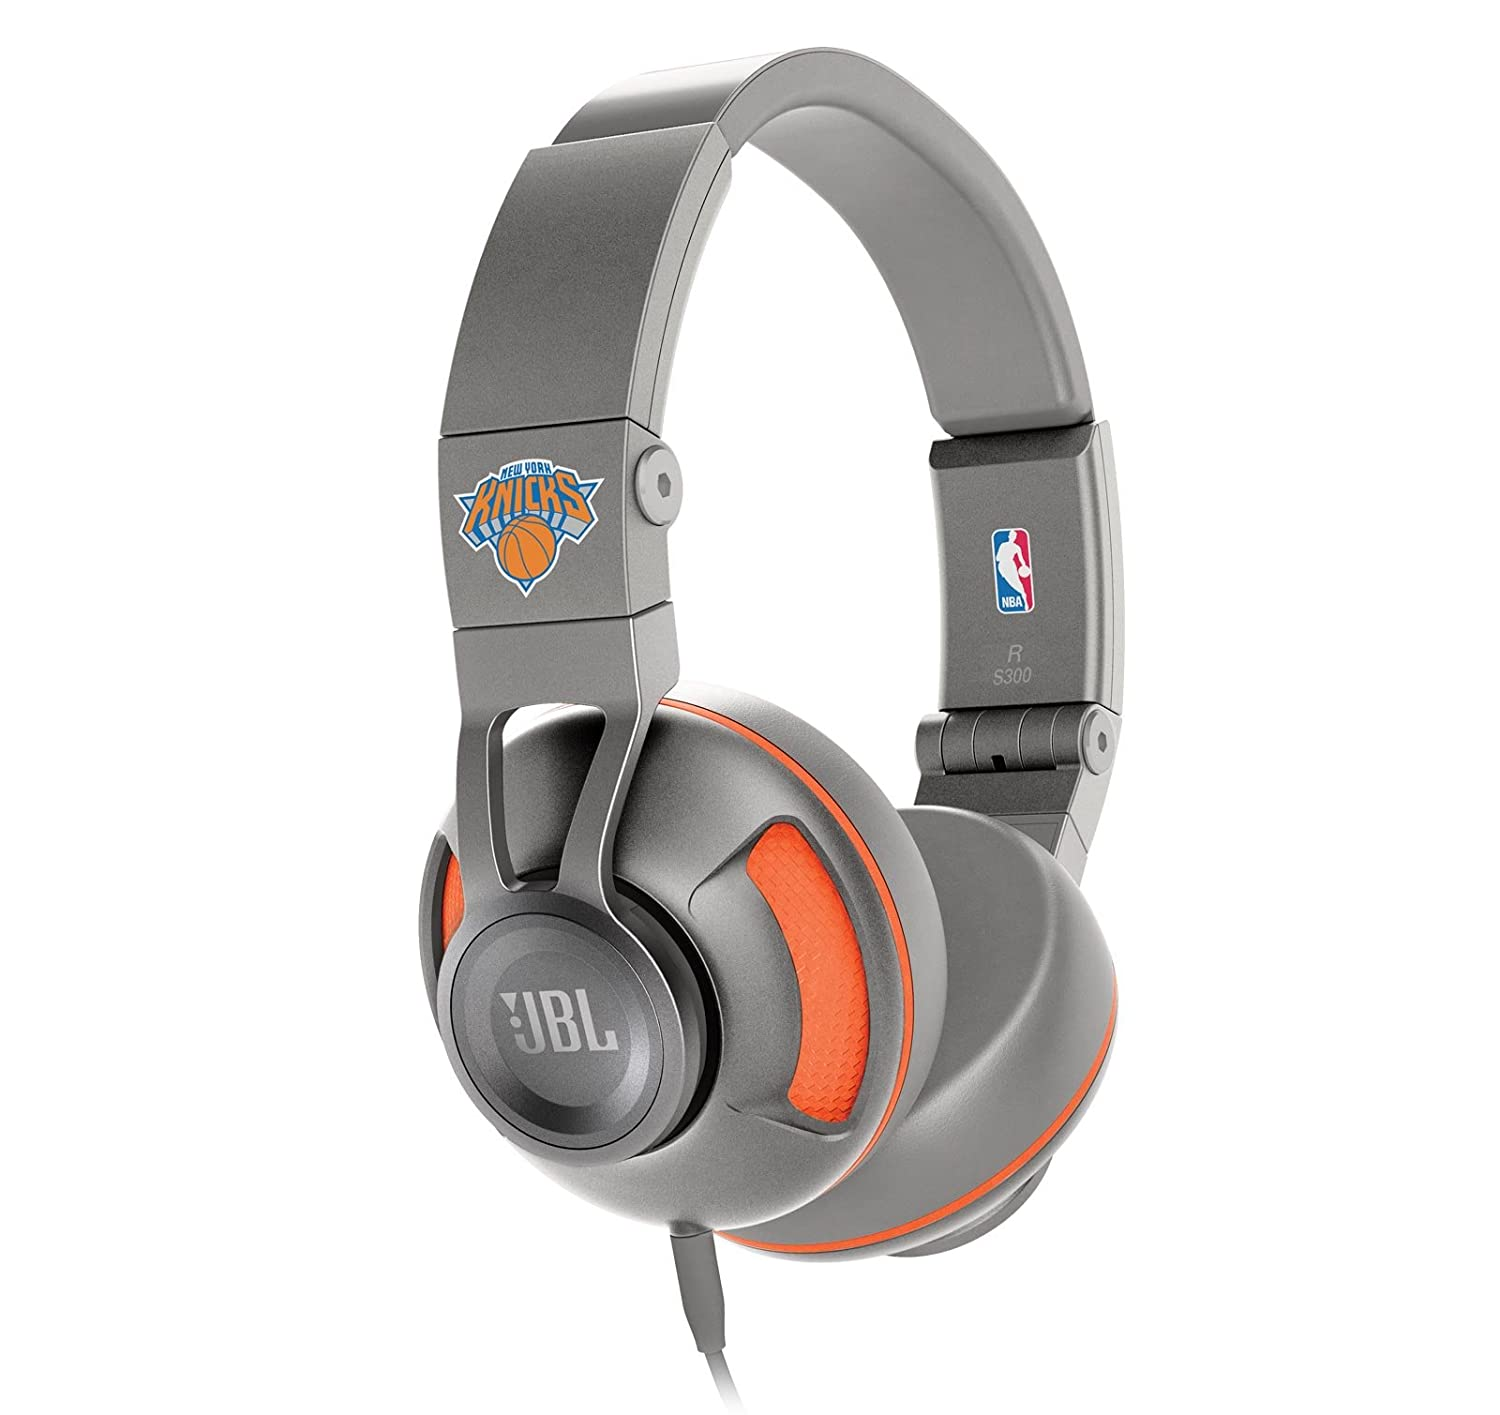 Jbl S300 New York Knicks Premium On Ear Stereo Headset Synchros E30 Headphones With Universal Remote Home Audio Theater